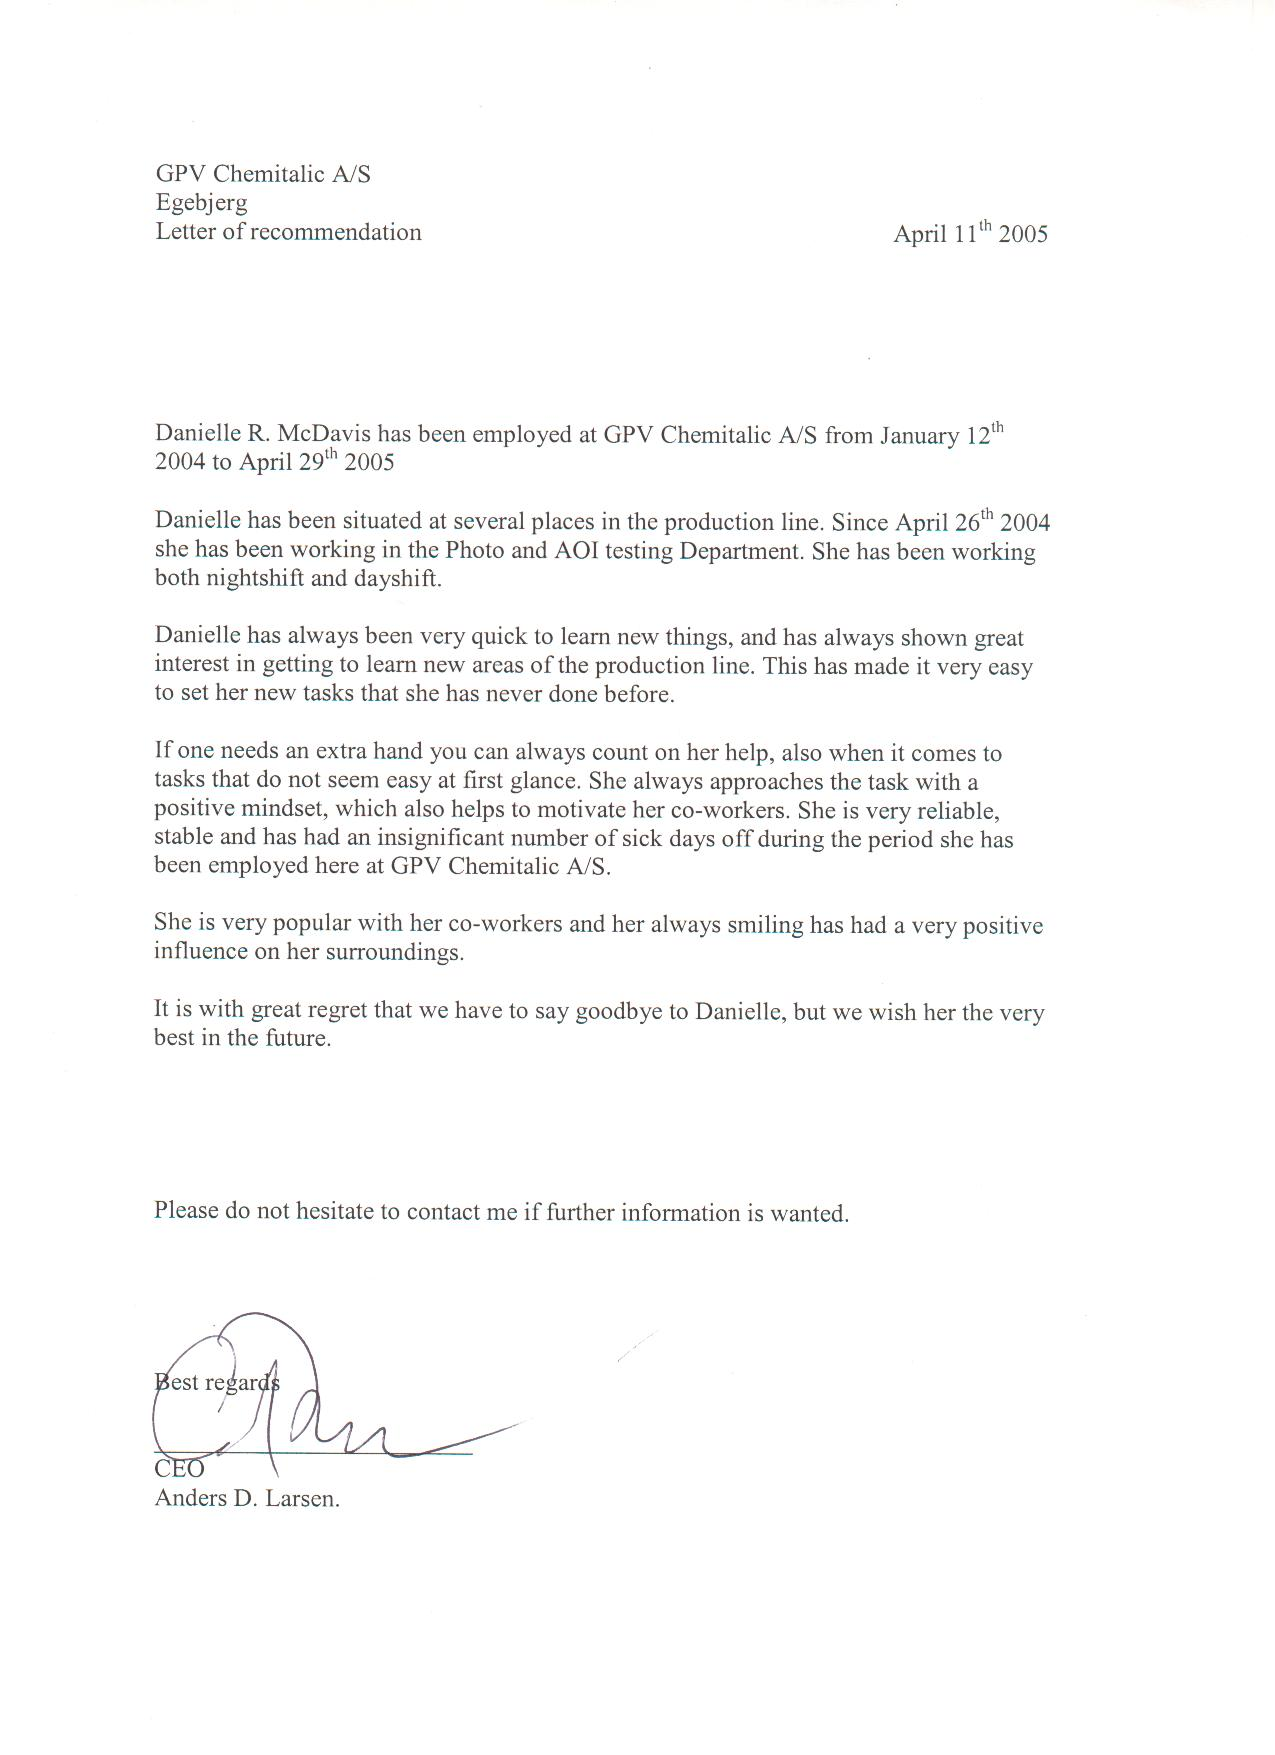 Letter of Recommendation, CEO, Anders D. Larsen, Chemitalic A/S